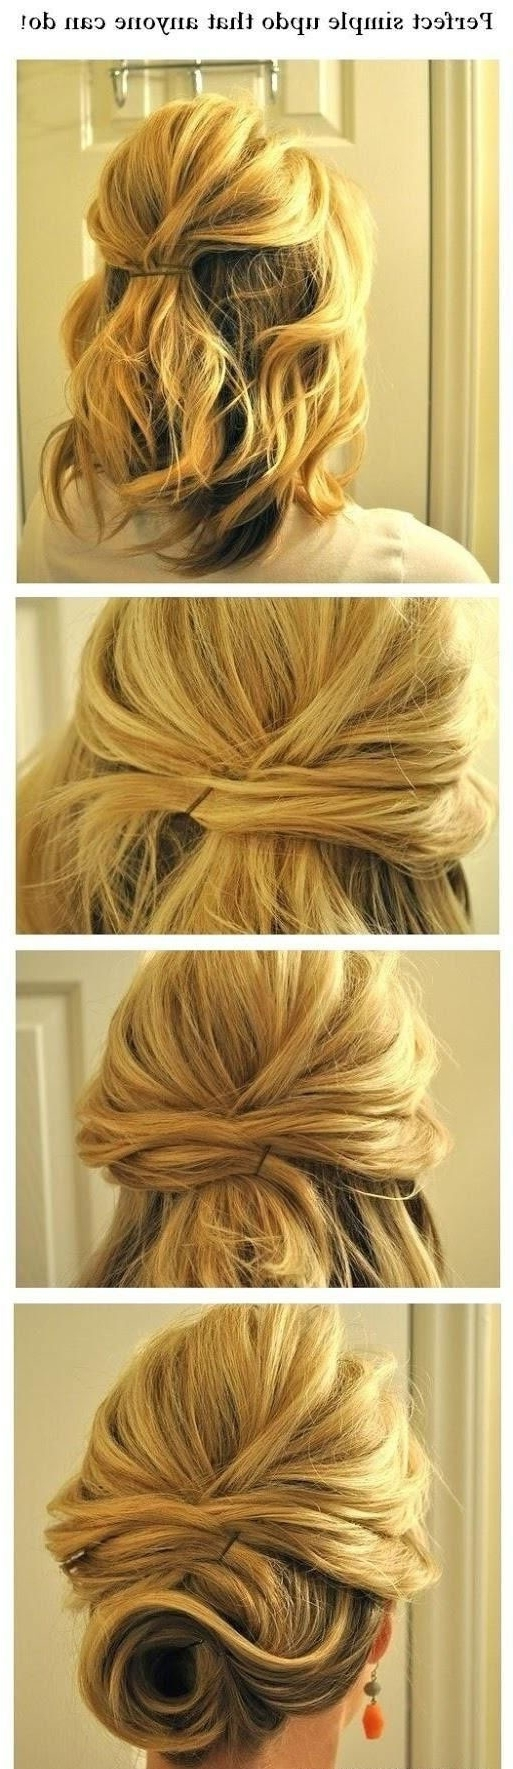 15 Cute And Easy Hairstyle Tutorials For Medium Length Hair – Gurl Inside Easy Diy Updos For Medium Length Hair (View 2 of 15)